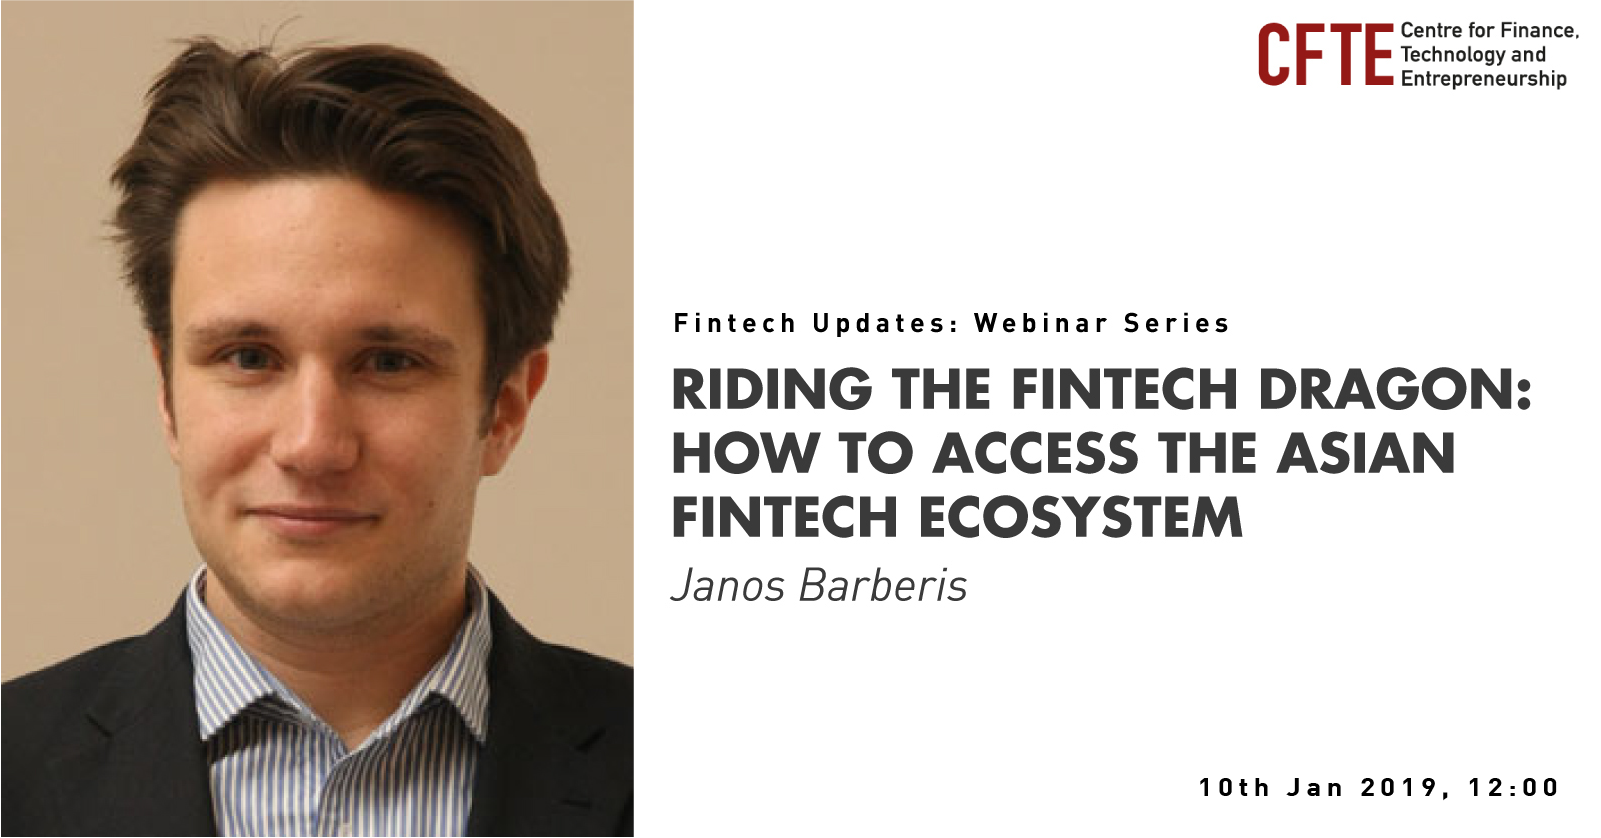 Riding the Fintech Dragon: How to Access the Asian Fintech Ecosystem with Janos Barberis